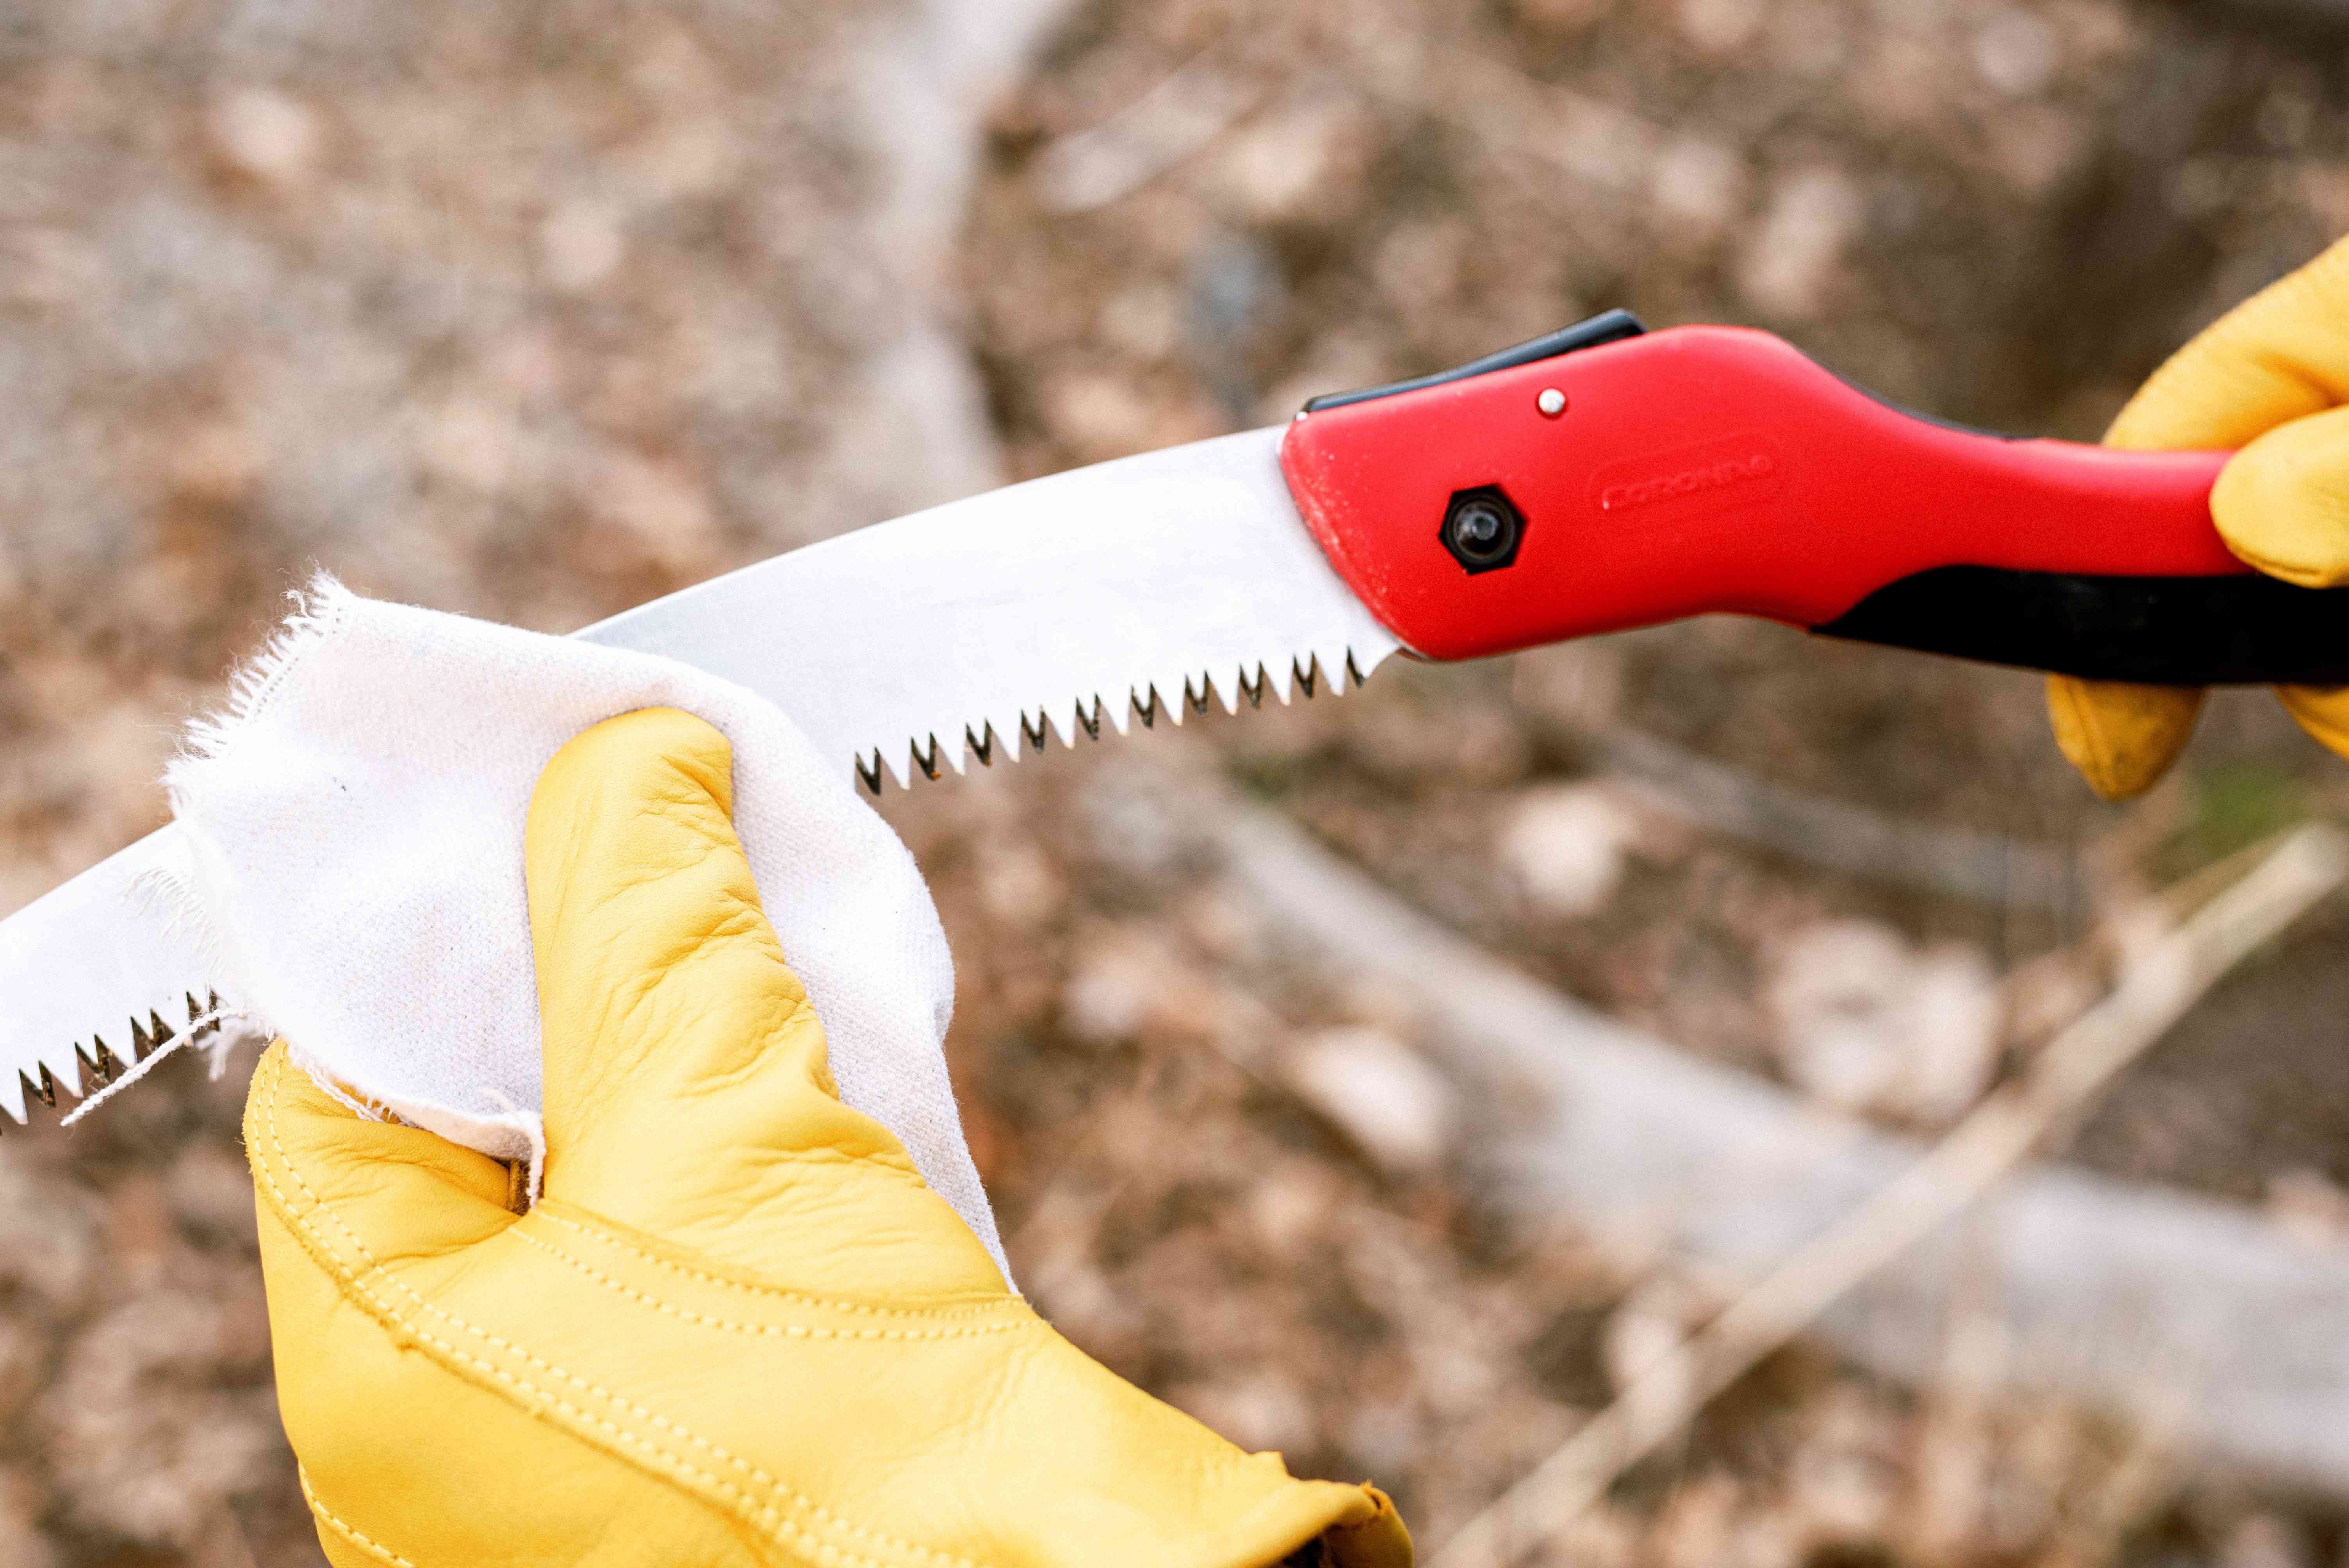 Pruning saw with red handle cleaned with white sturdy cloth